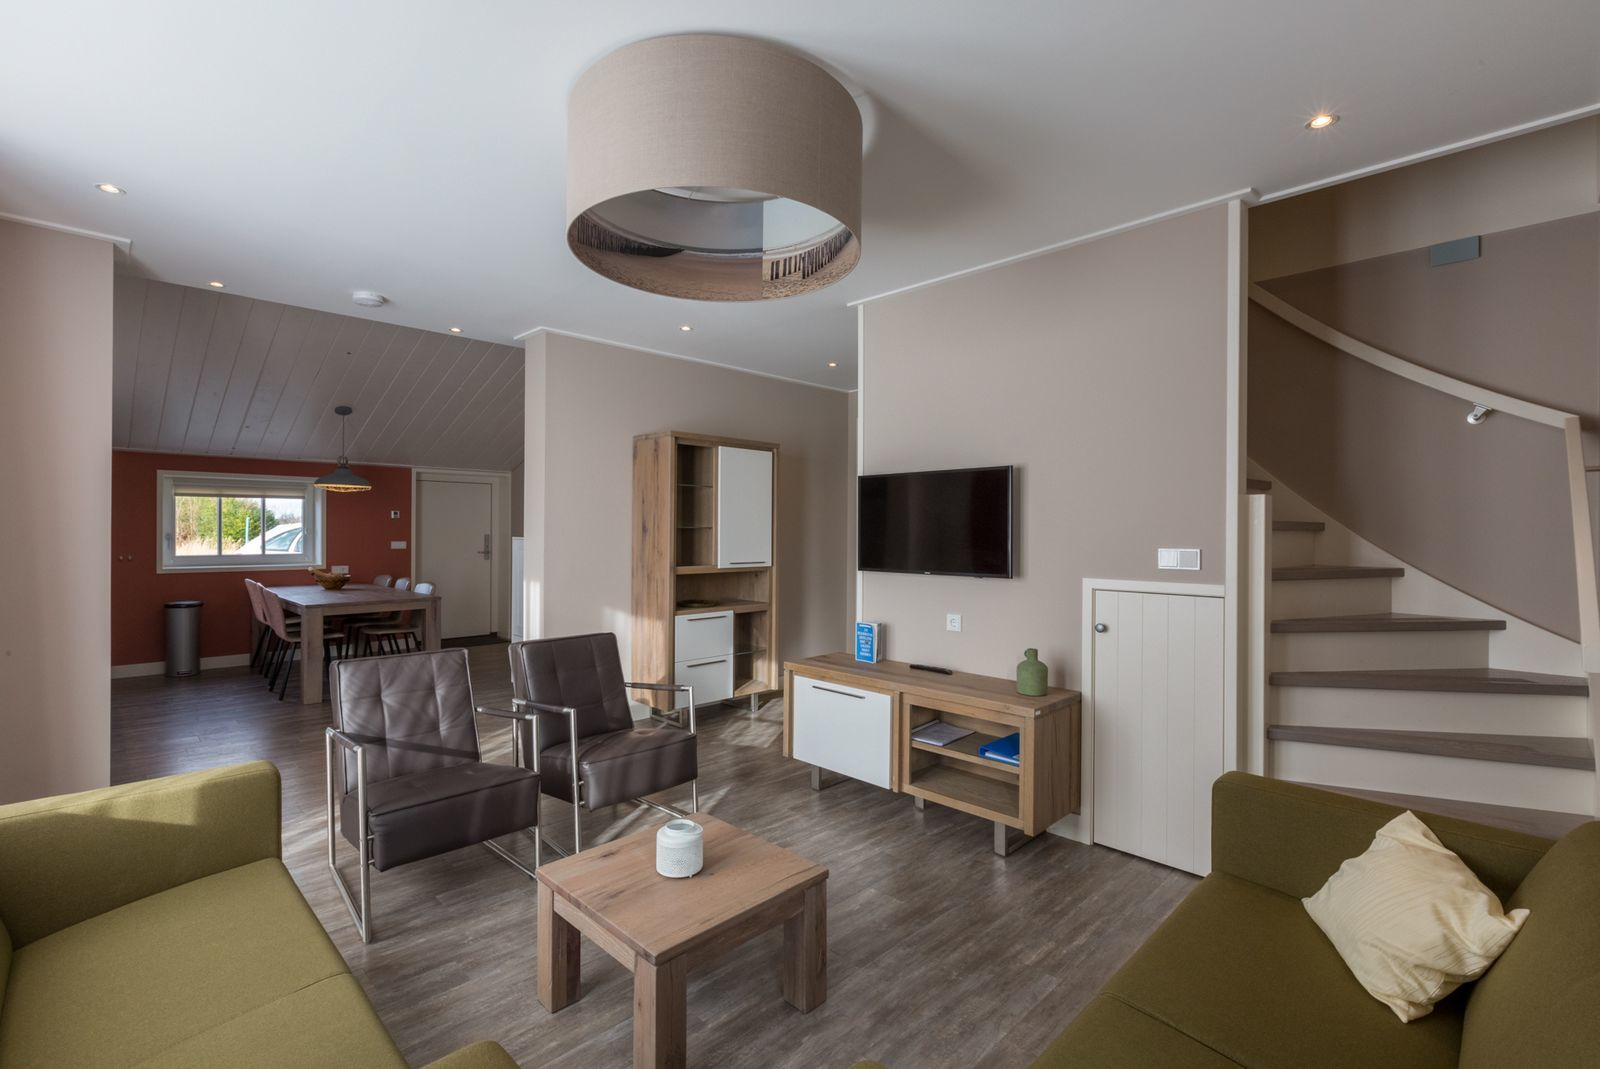 Oostkapelle - Aparment Comfort 6 Persons